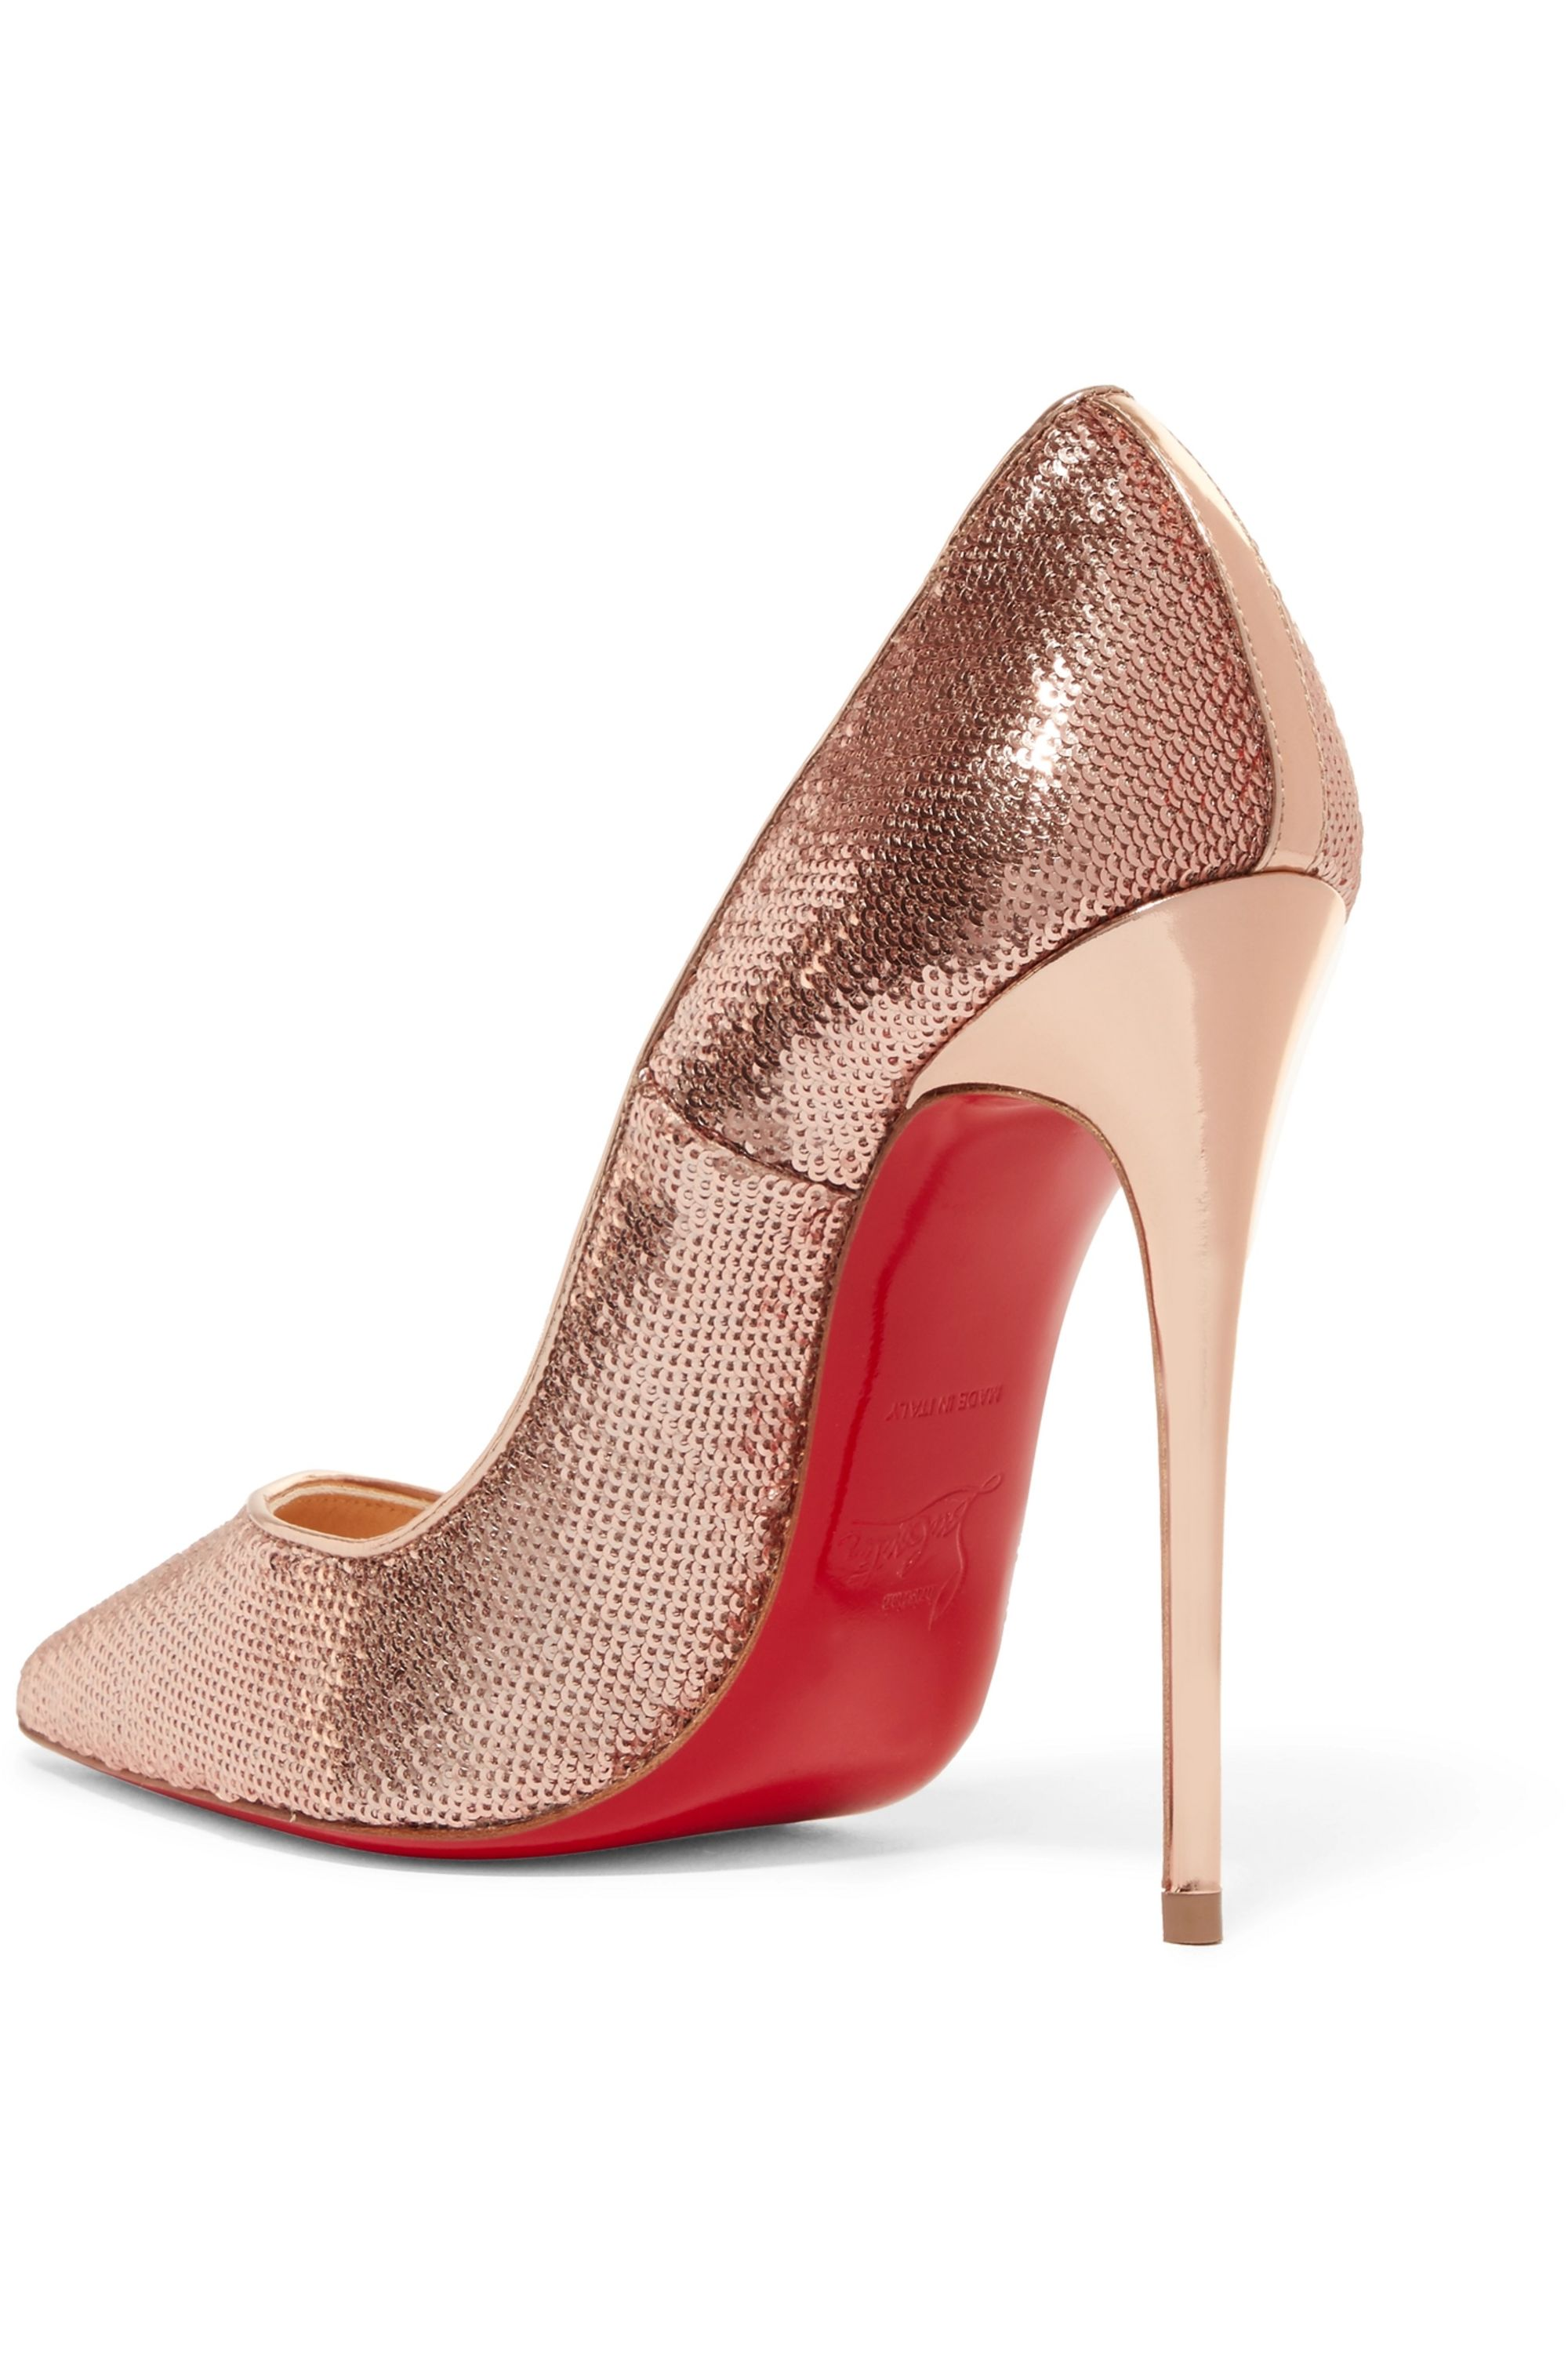 Christian Louboutin So Kate 120 sequined canvas pumps